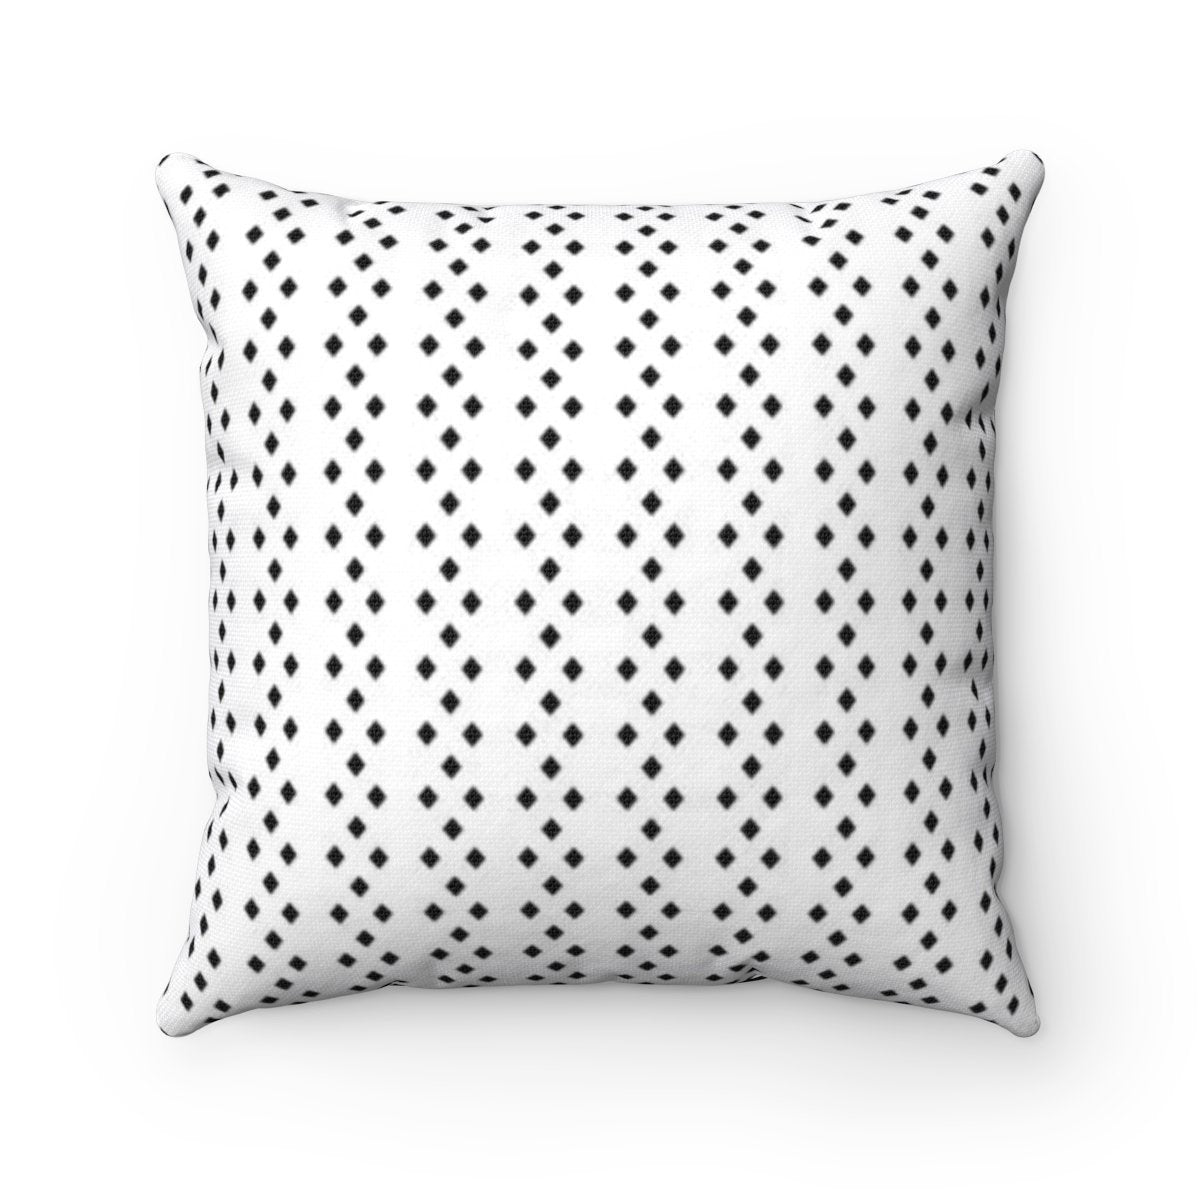 Black and White Polka dots decorative cushion cover-Home Decor - Decorative Accents - Pillows & Throws - Decorative Pillows-Maison d'Elite-Très Elite